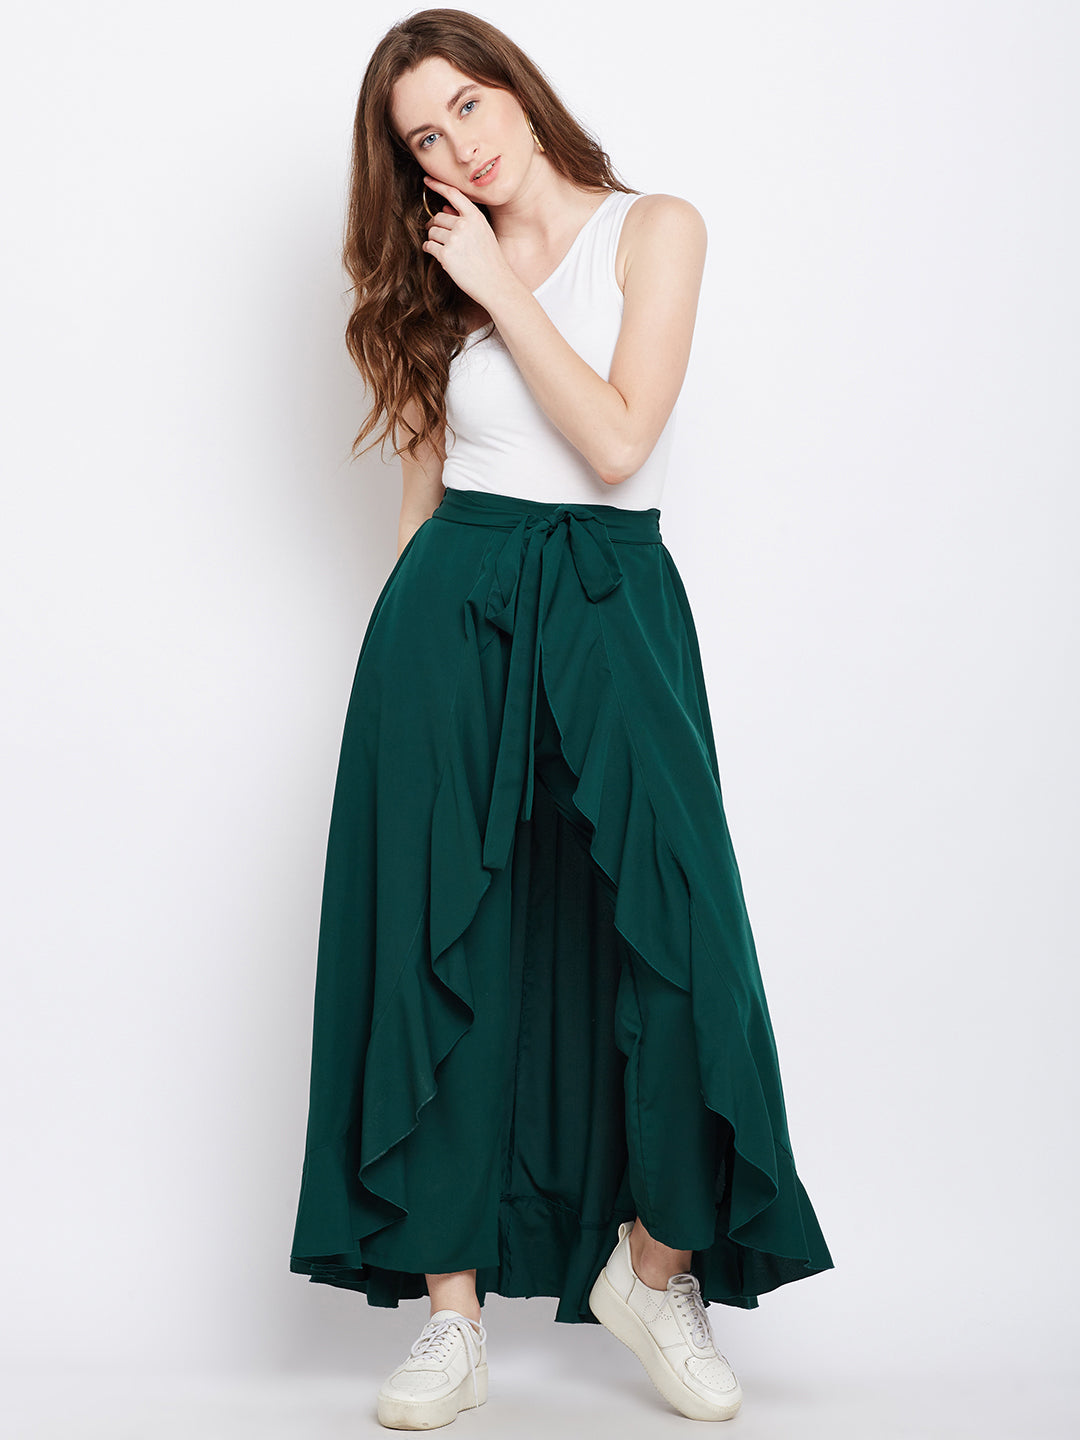 Berrylush Women Green Solid Ruffled Flared Maxi Skirt with Attached Trousers